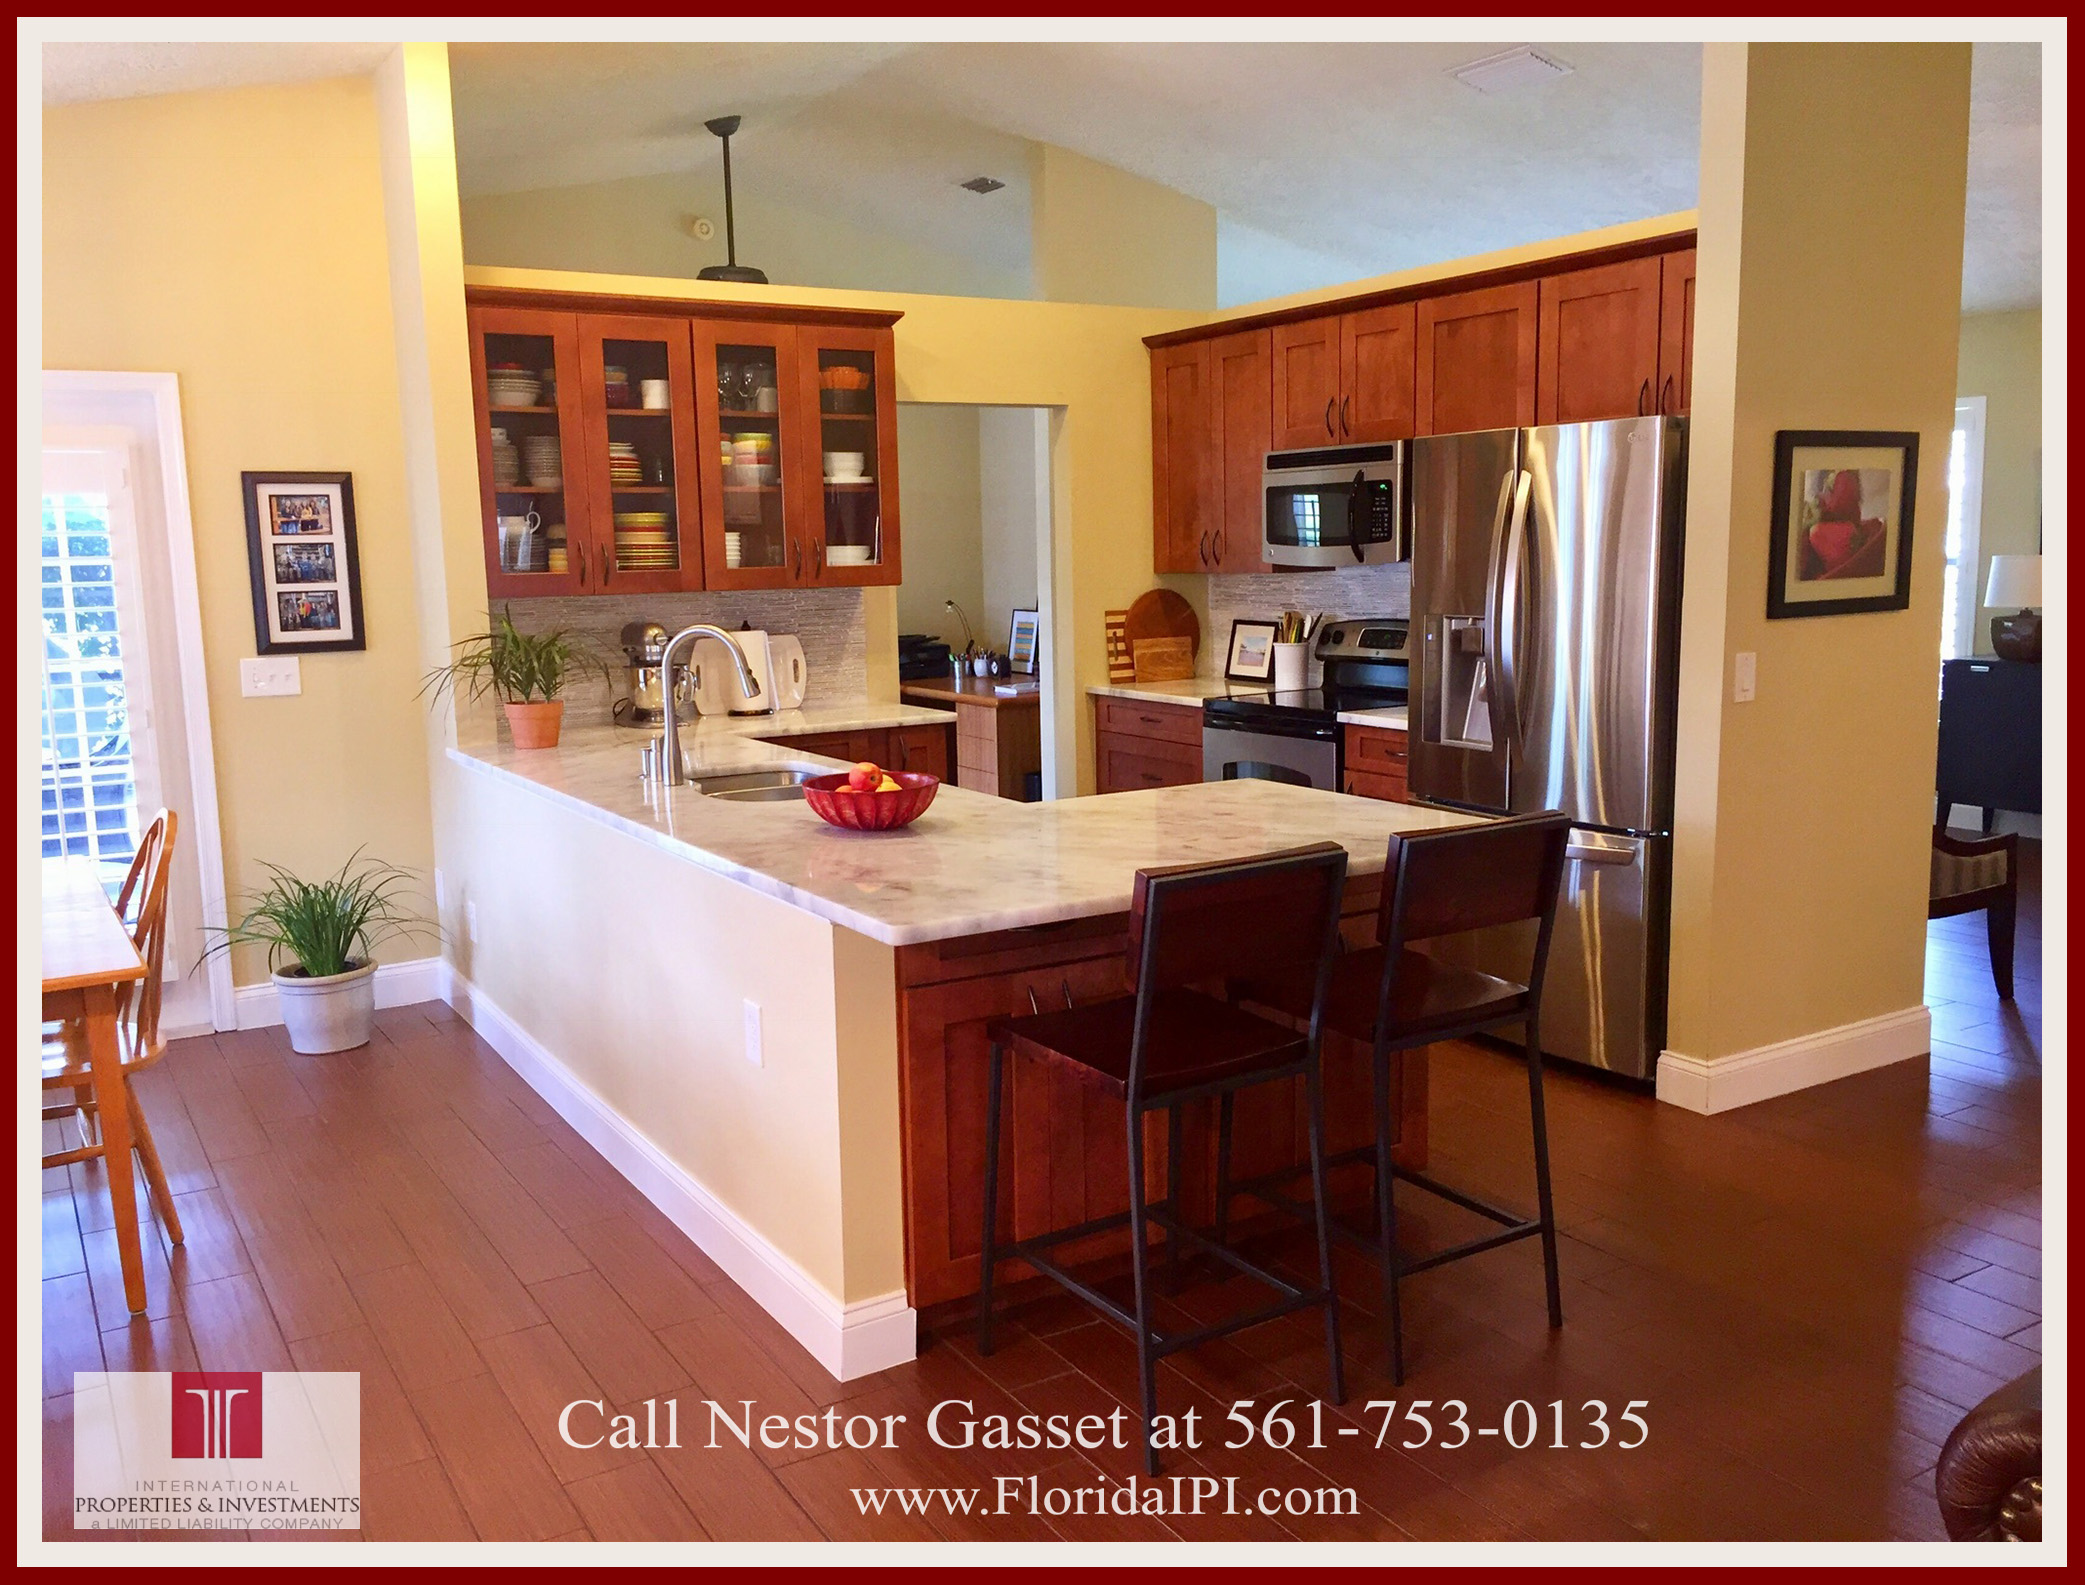 Homes For Sale Near Binks Elementary School in Wellington FL - The newly renovated kitchen has a relaxing view overlooking the swimming pool.